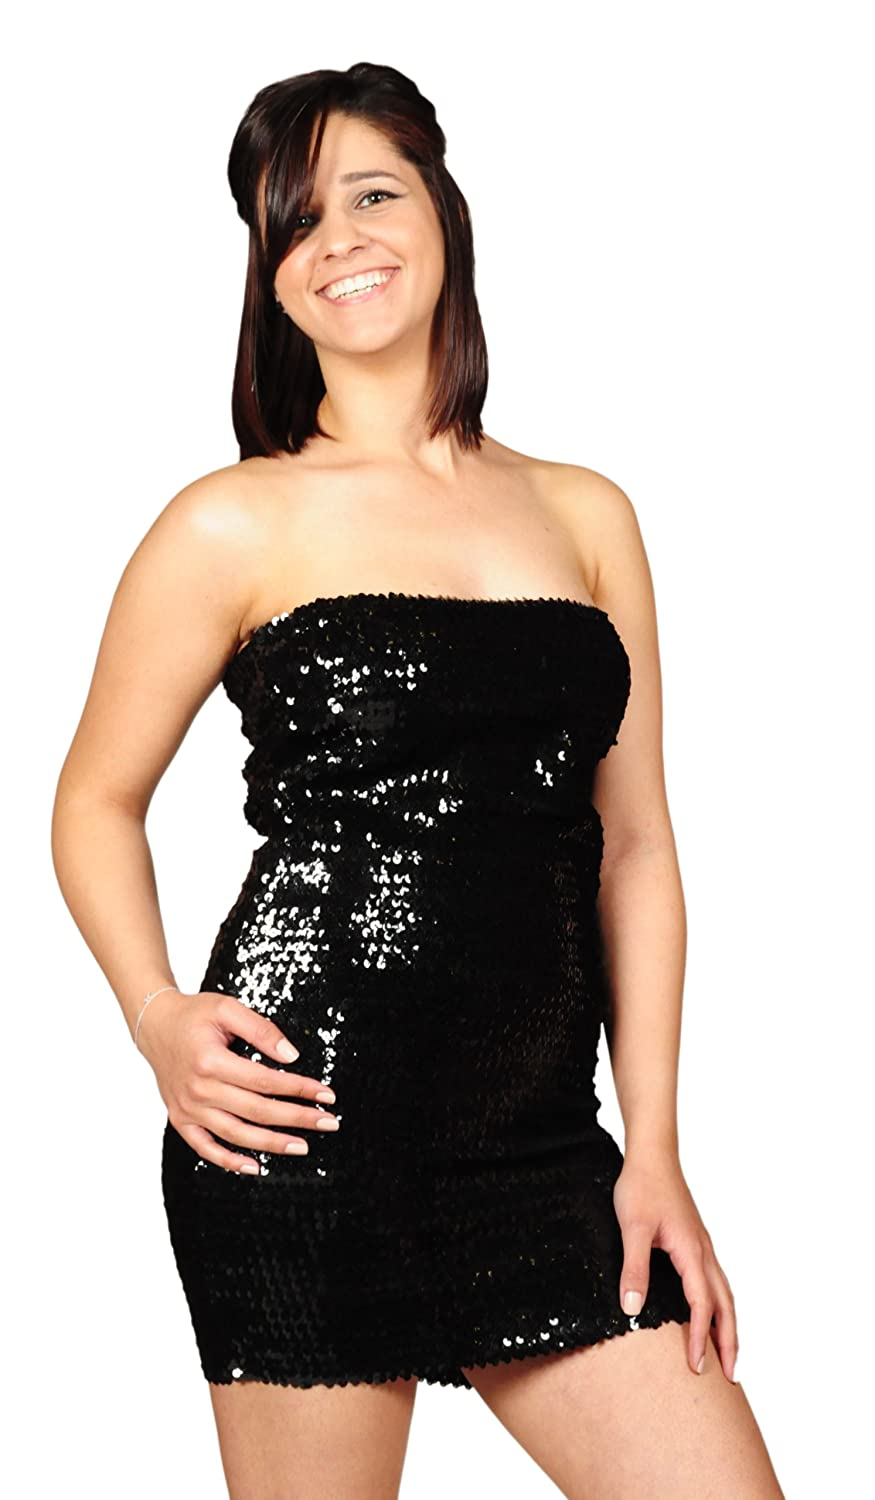 ce0a15fe39b2 Amazon.com: Pearl Women's Exotic Sexy Sparkly Sequin Tube Dress - BLACK:  Clothing